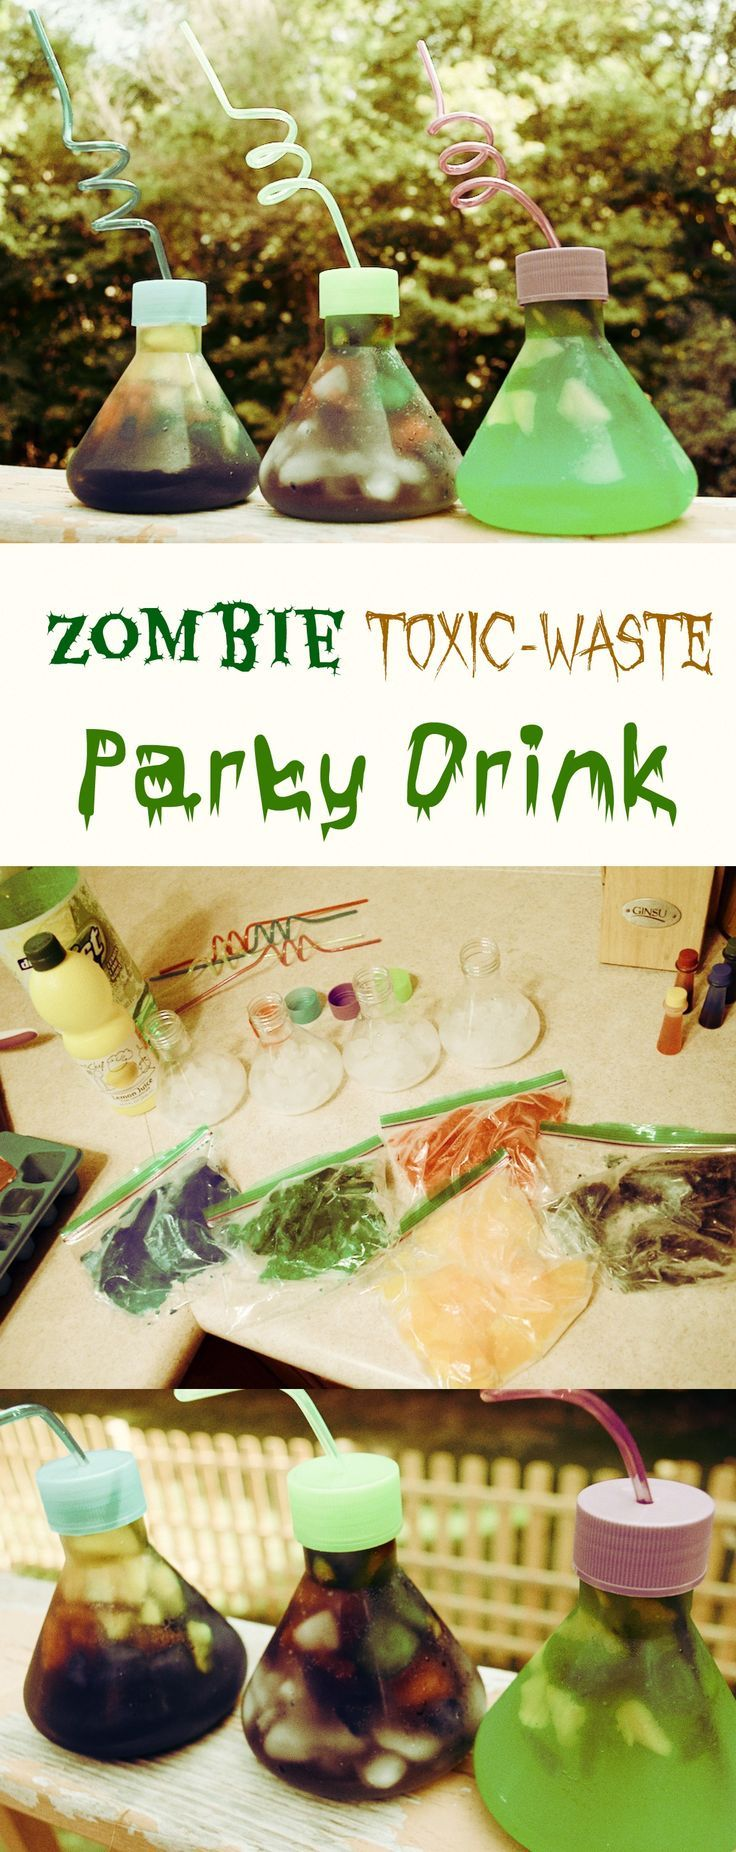 Swampy zombie toxic waste science party drinks recipe idea easy food forumfinder Images